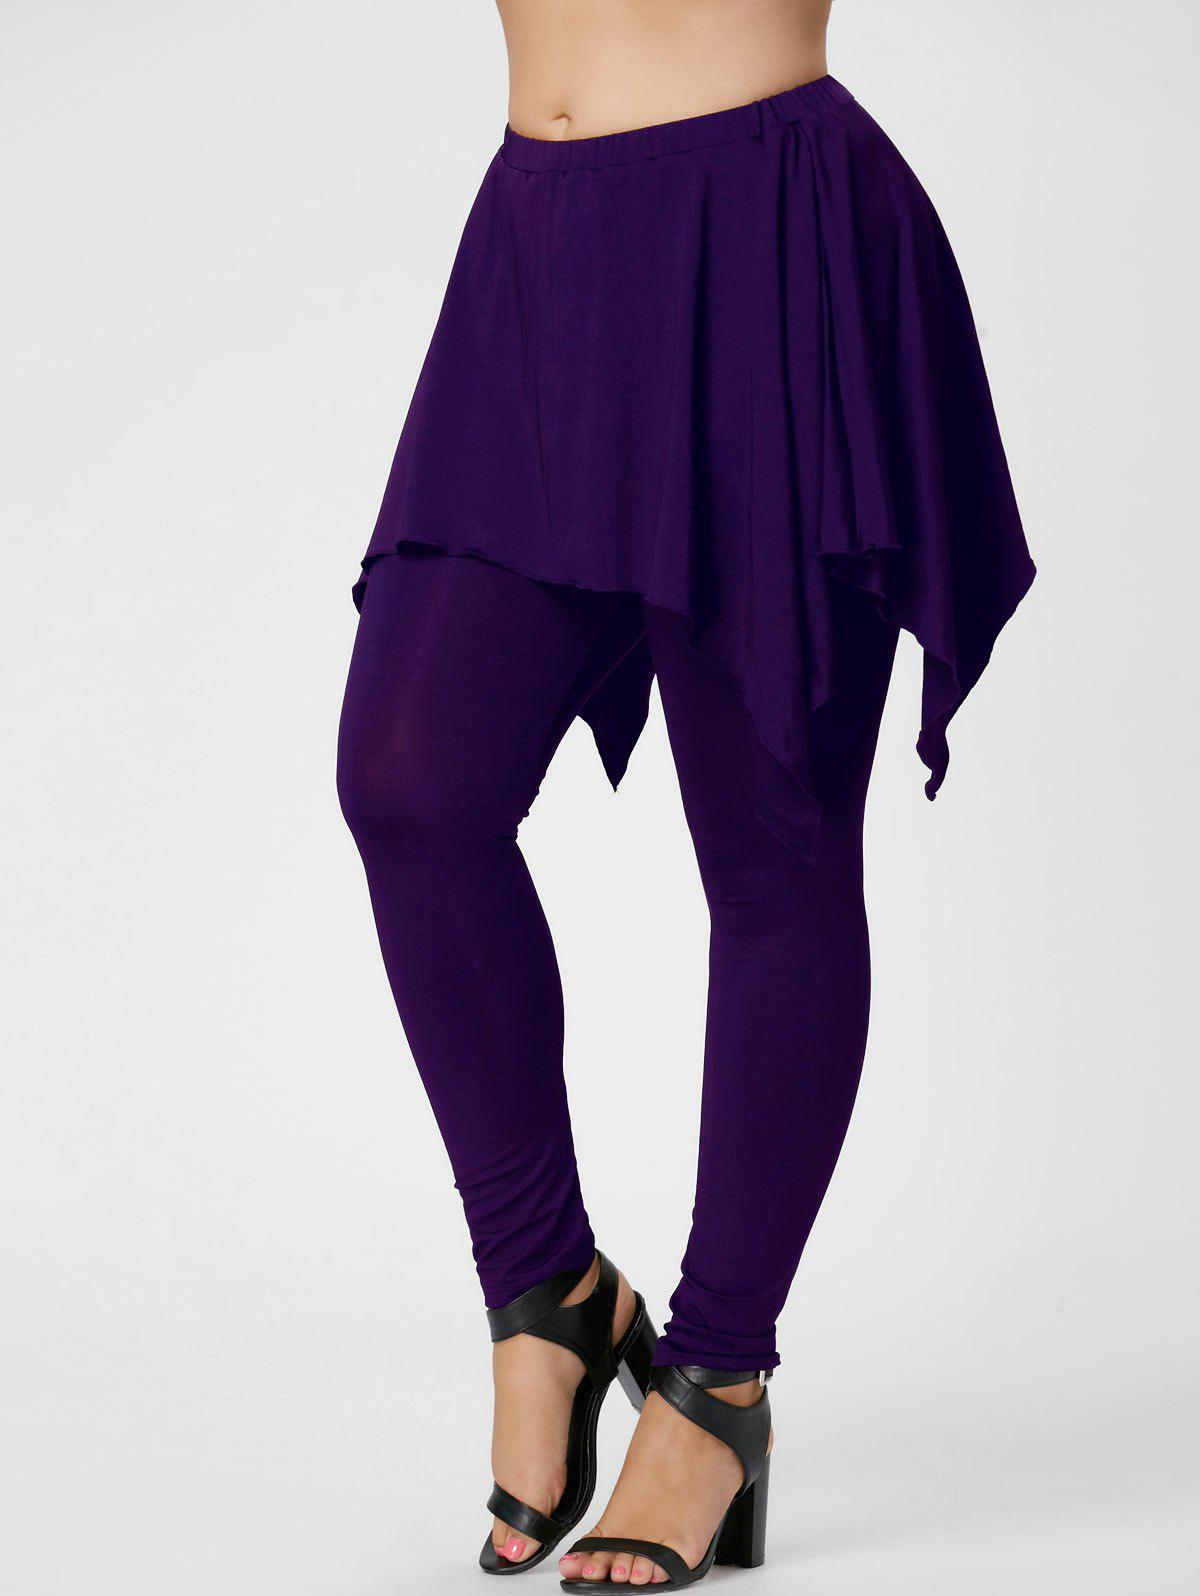 Plus Size Handerchief Skirt LenggingsWOMEN<br><br>Size: 5XL; Color: PURPLE; Style: Active; Length: Normal; Material: Polyester,Spandex; Fit Type: Skinny; Waist Type: Mid; Closure Type: Elastic Waist; Pattern Type: Solid; Pant Style: Pencil Pants; Weight: 0.3600kg; Package Contents: 1 x Pants;